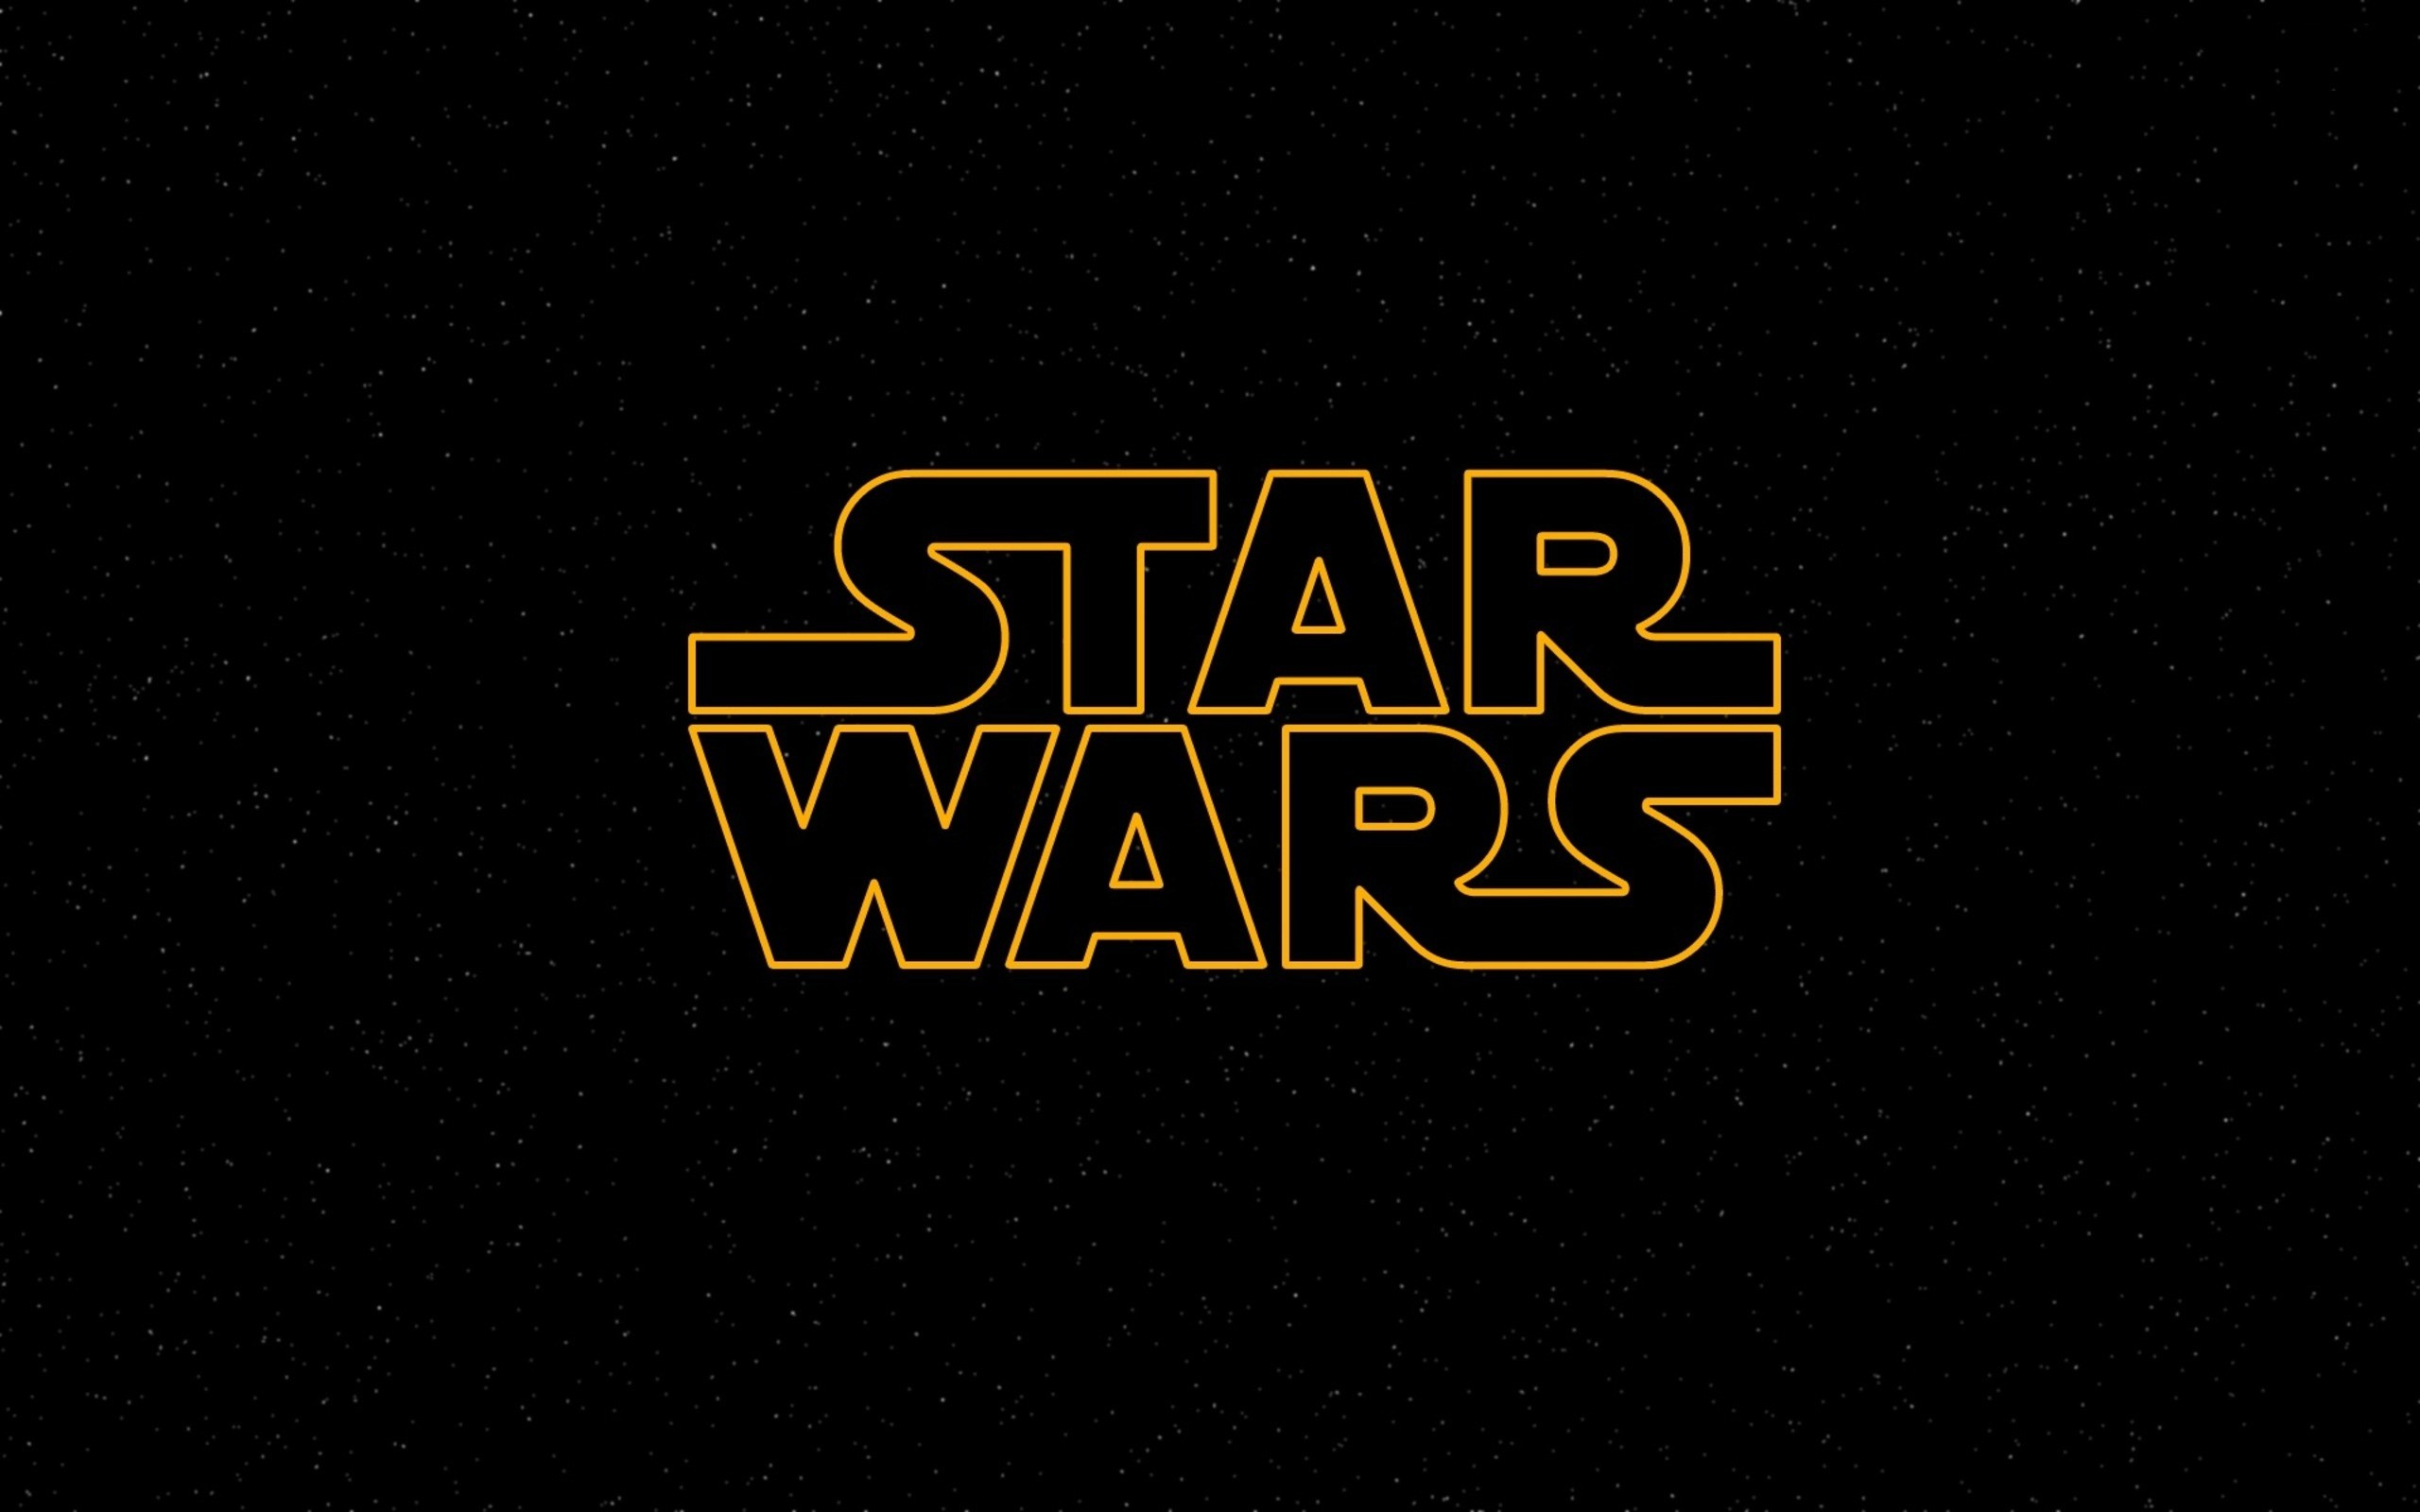 star wars logos black background wallpaper | 2560x1600 | 205430